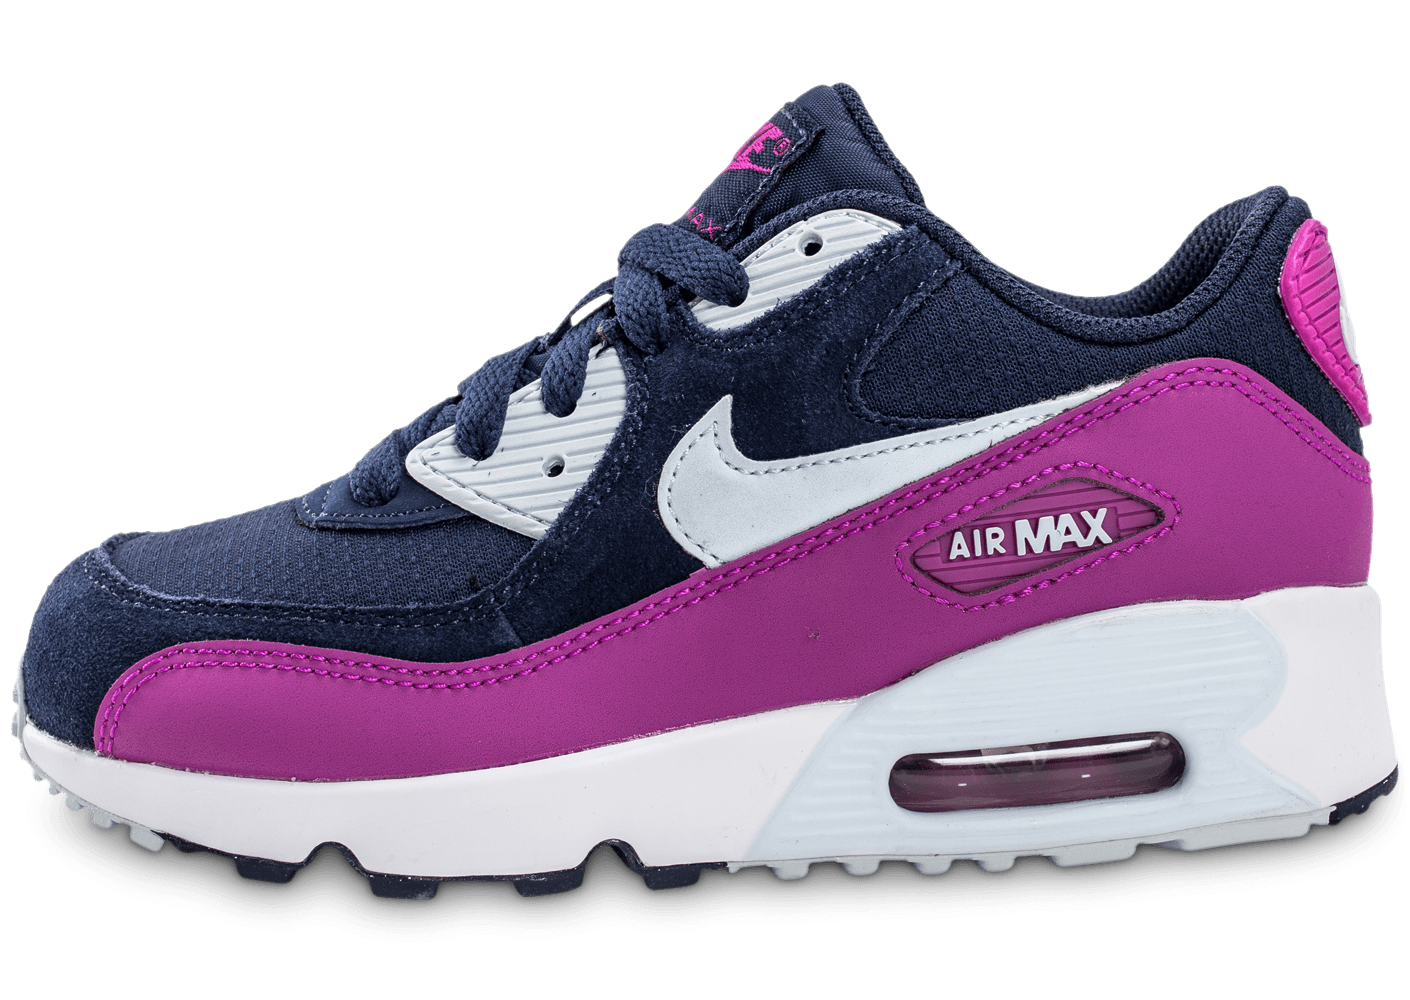 nike air max 90 enfant bleu marine chaussures black friday chausport. Black Bedroom Furniture Sets. Home Design Ideas